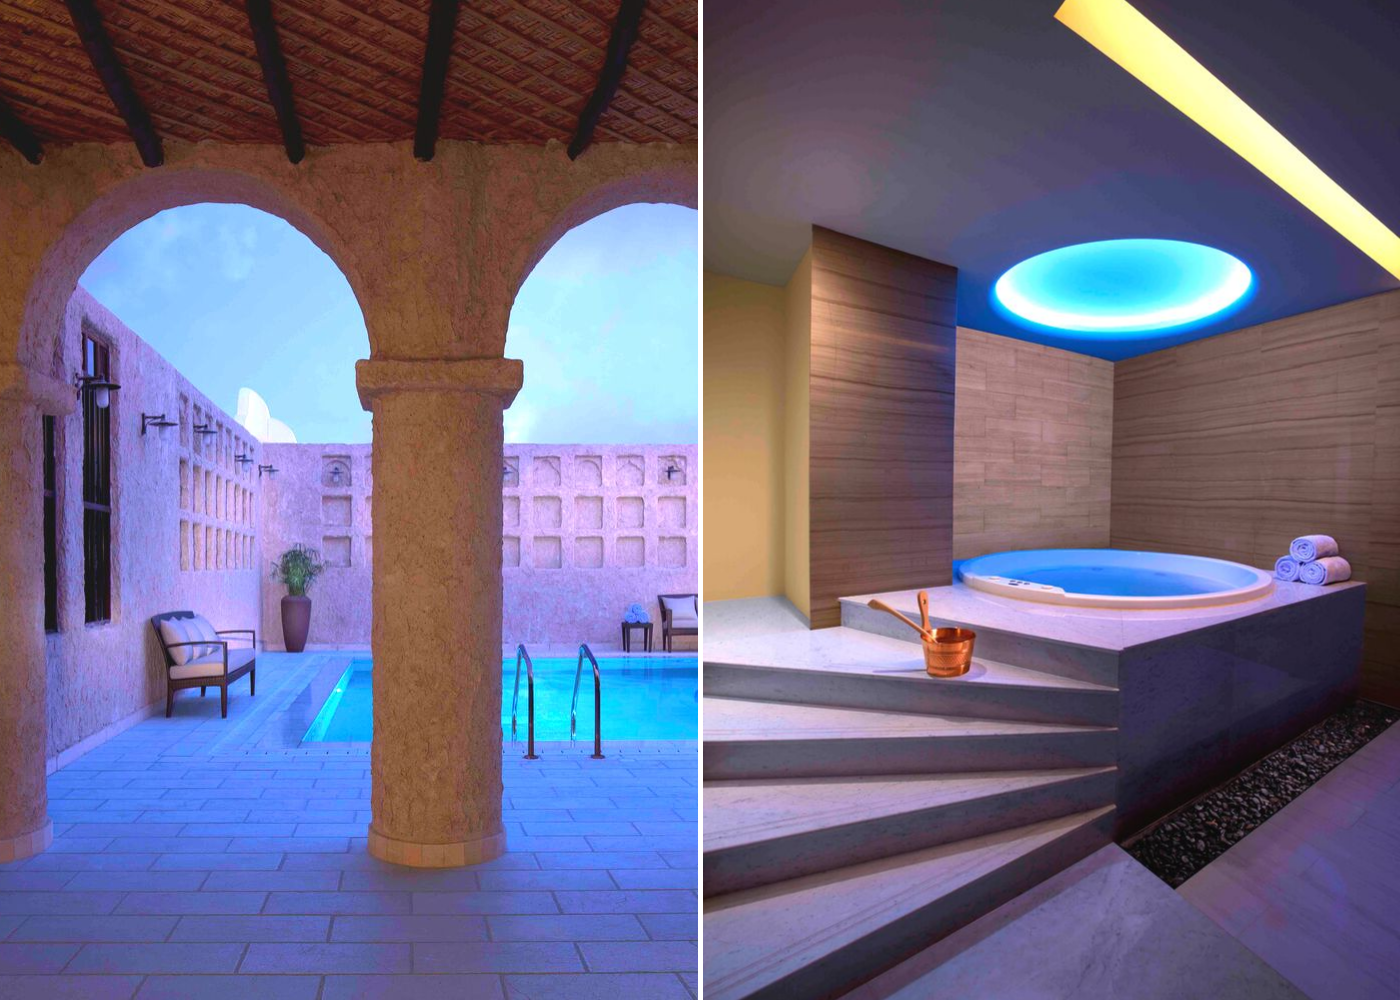 Qatar calling: We're loving these extraordinary Qatari hotels and unique explorations